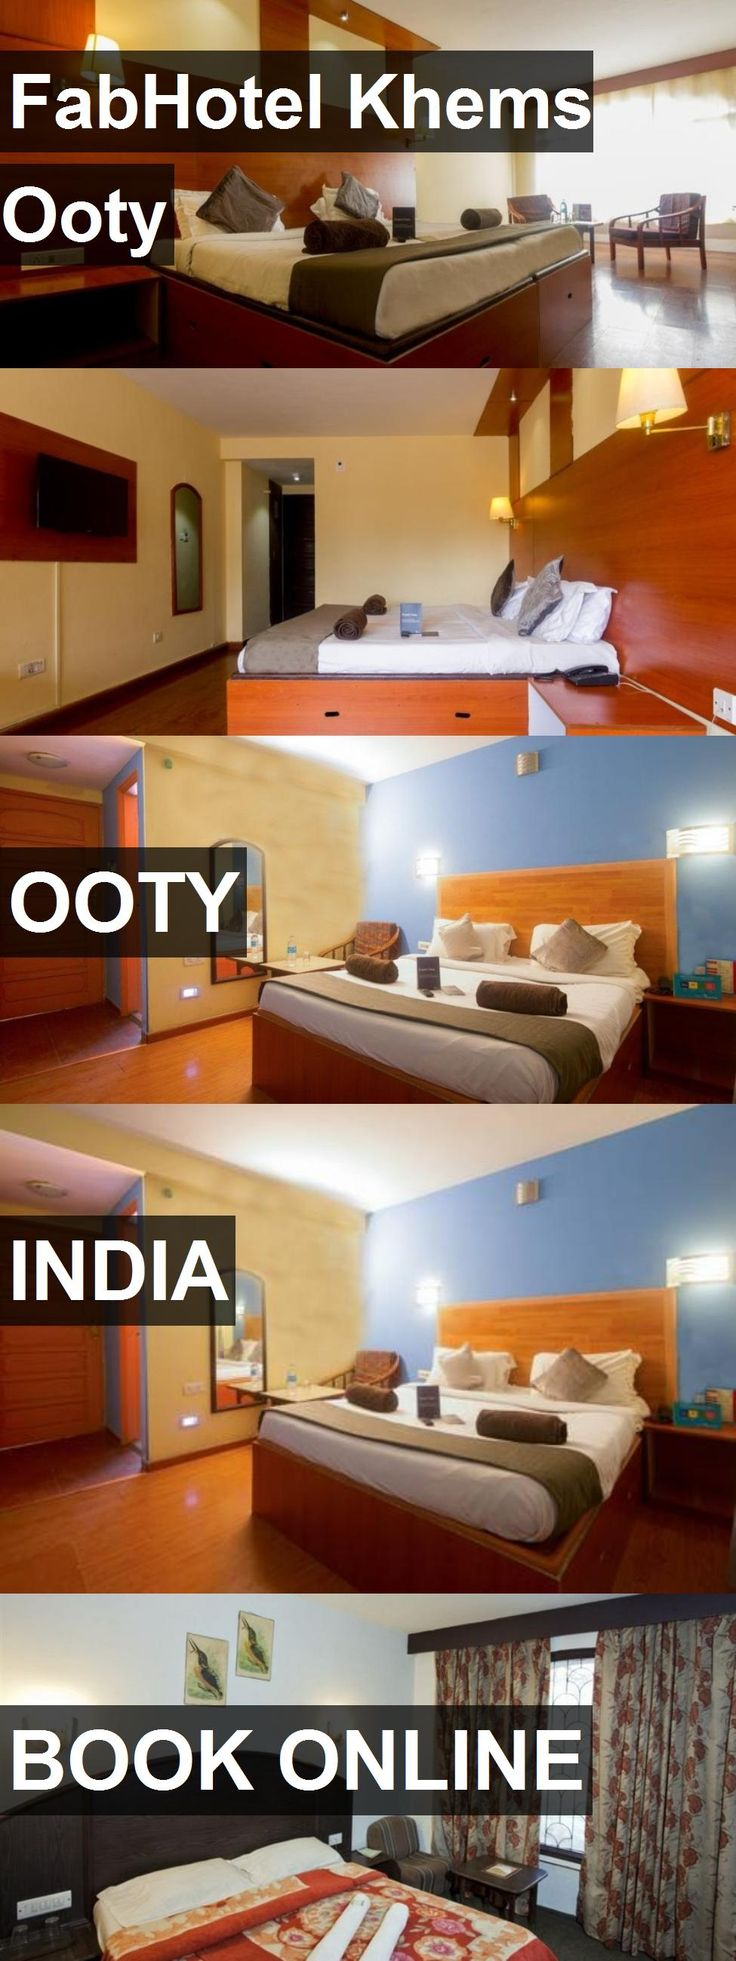 FabHotel Khems Ooty in Ooty, India. For more information, photos, reviews and best prices please follow the link. #India #Ooty #travel #vacation #hotel